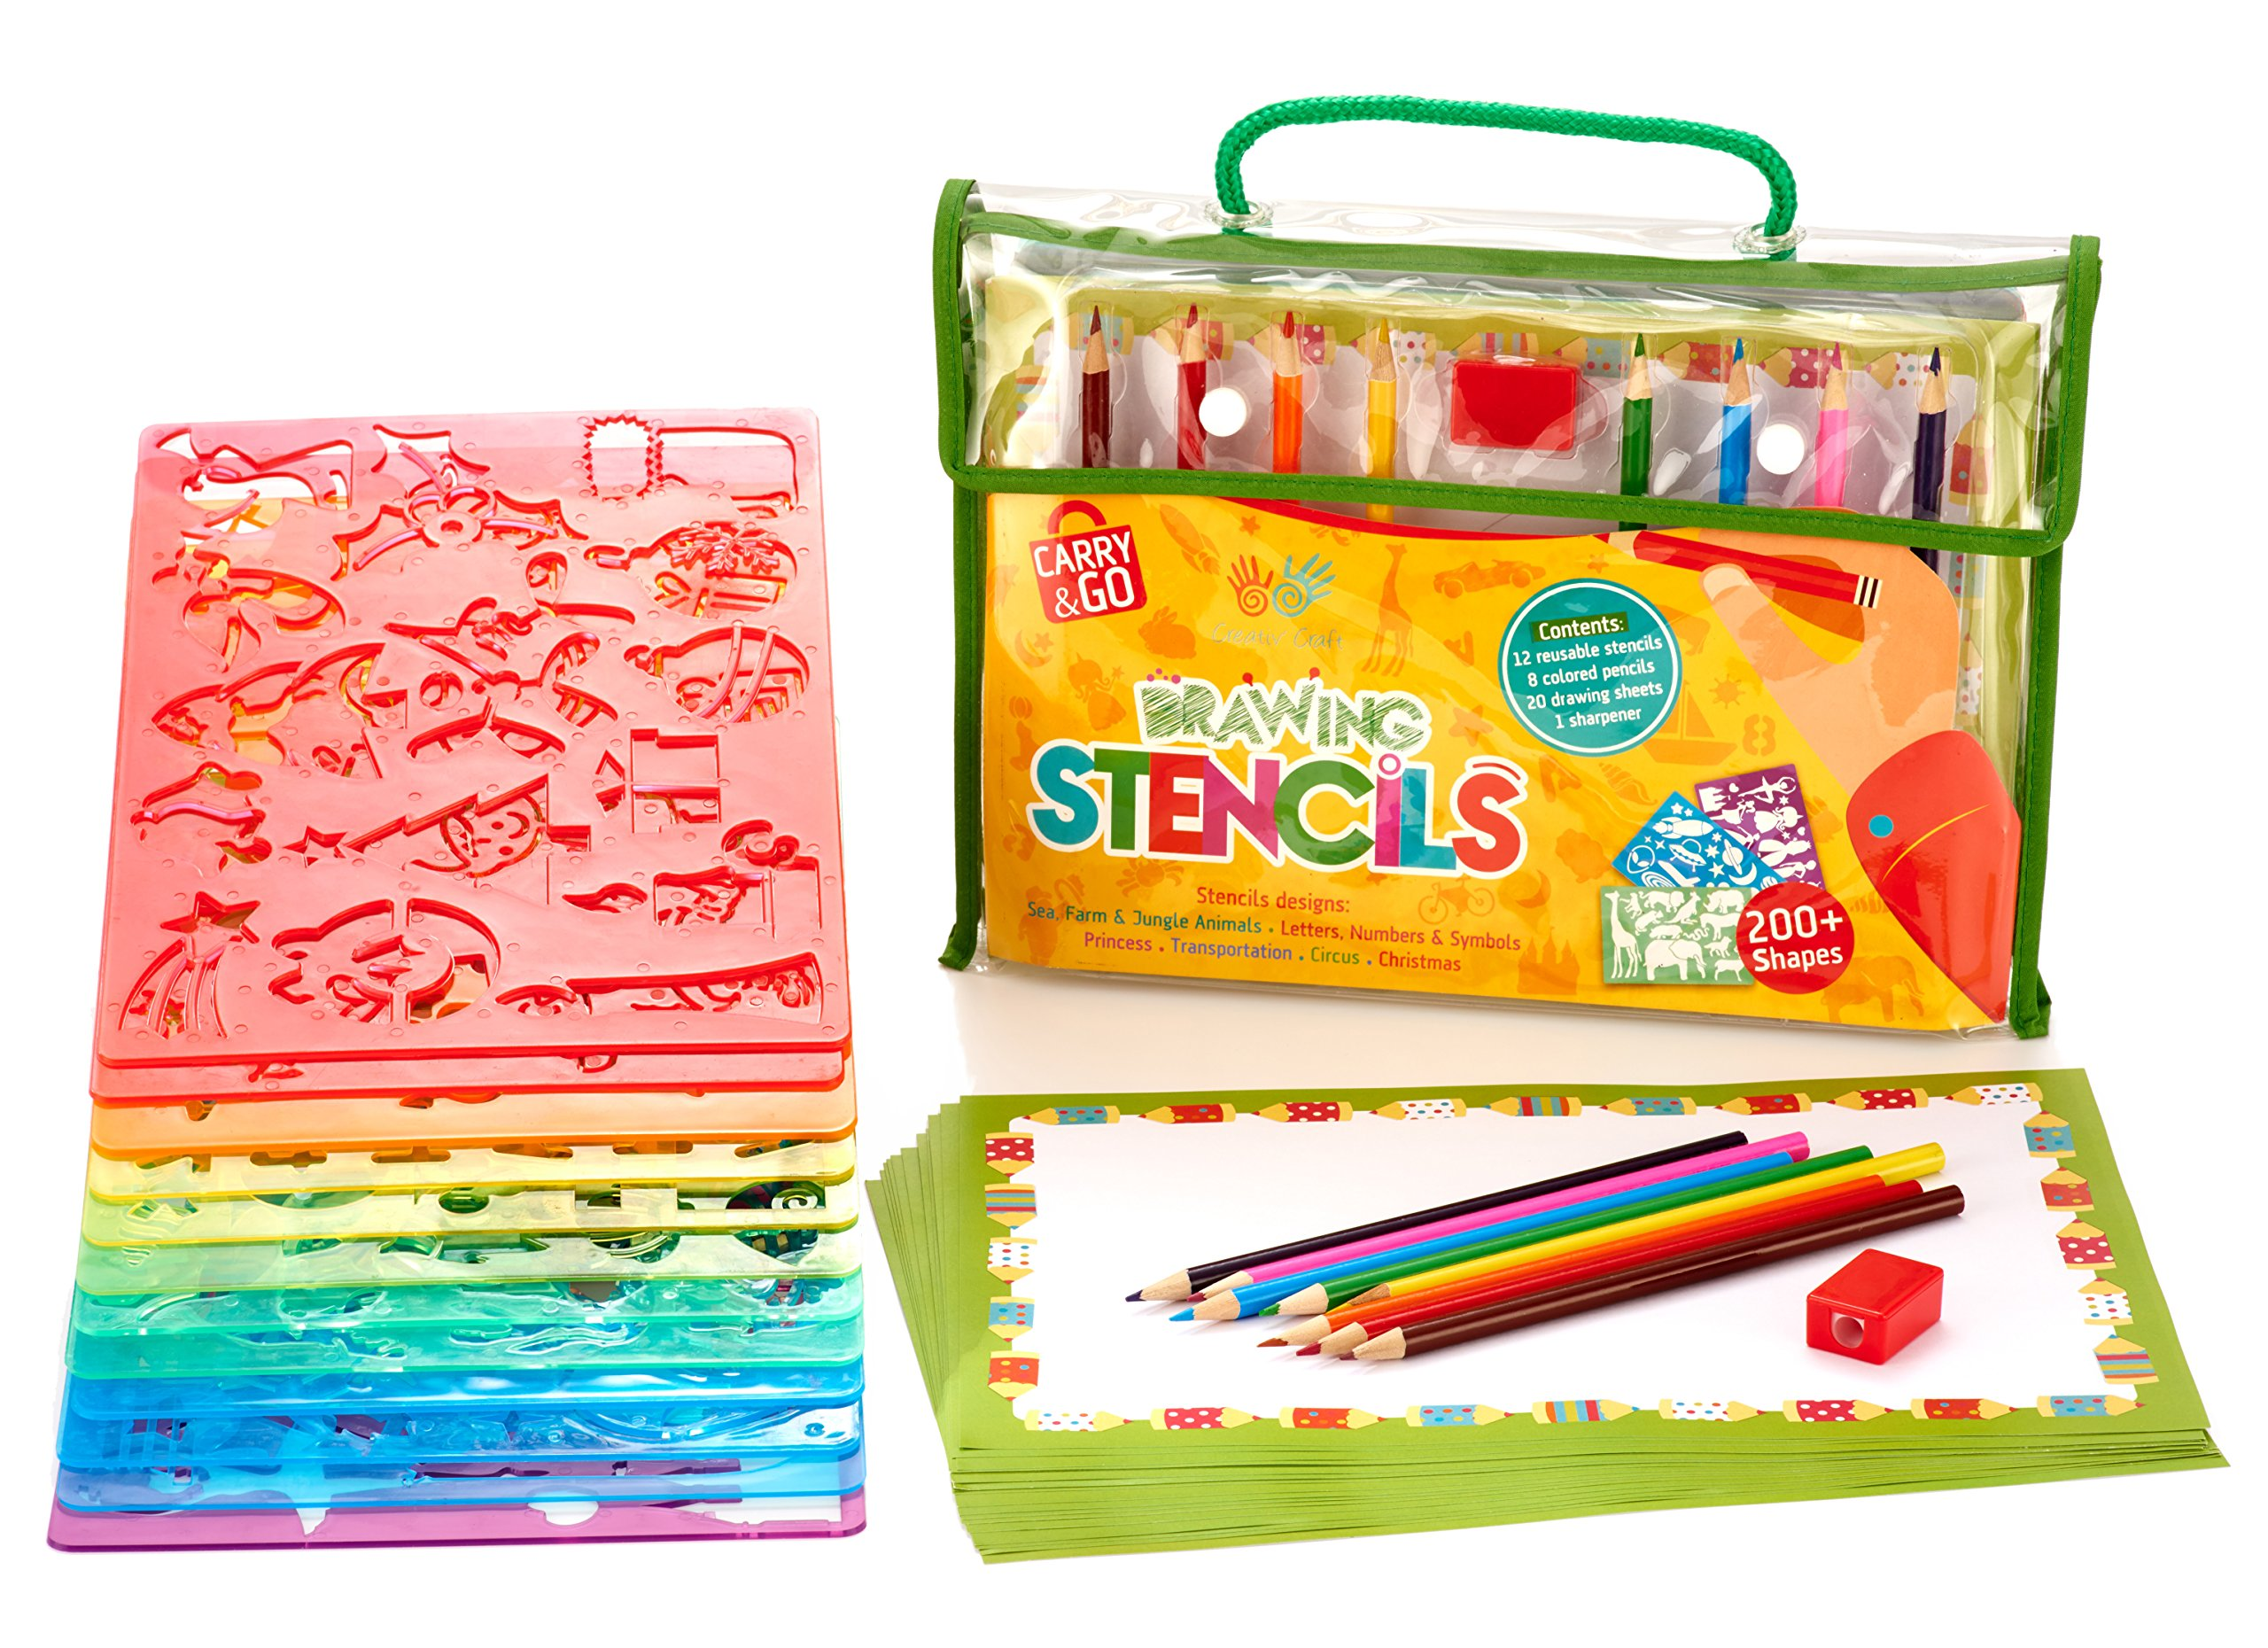 Product details for Arts and crafts sets for toddlers